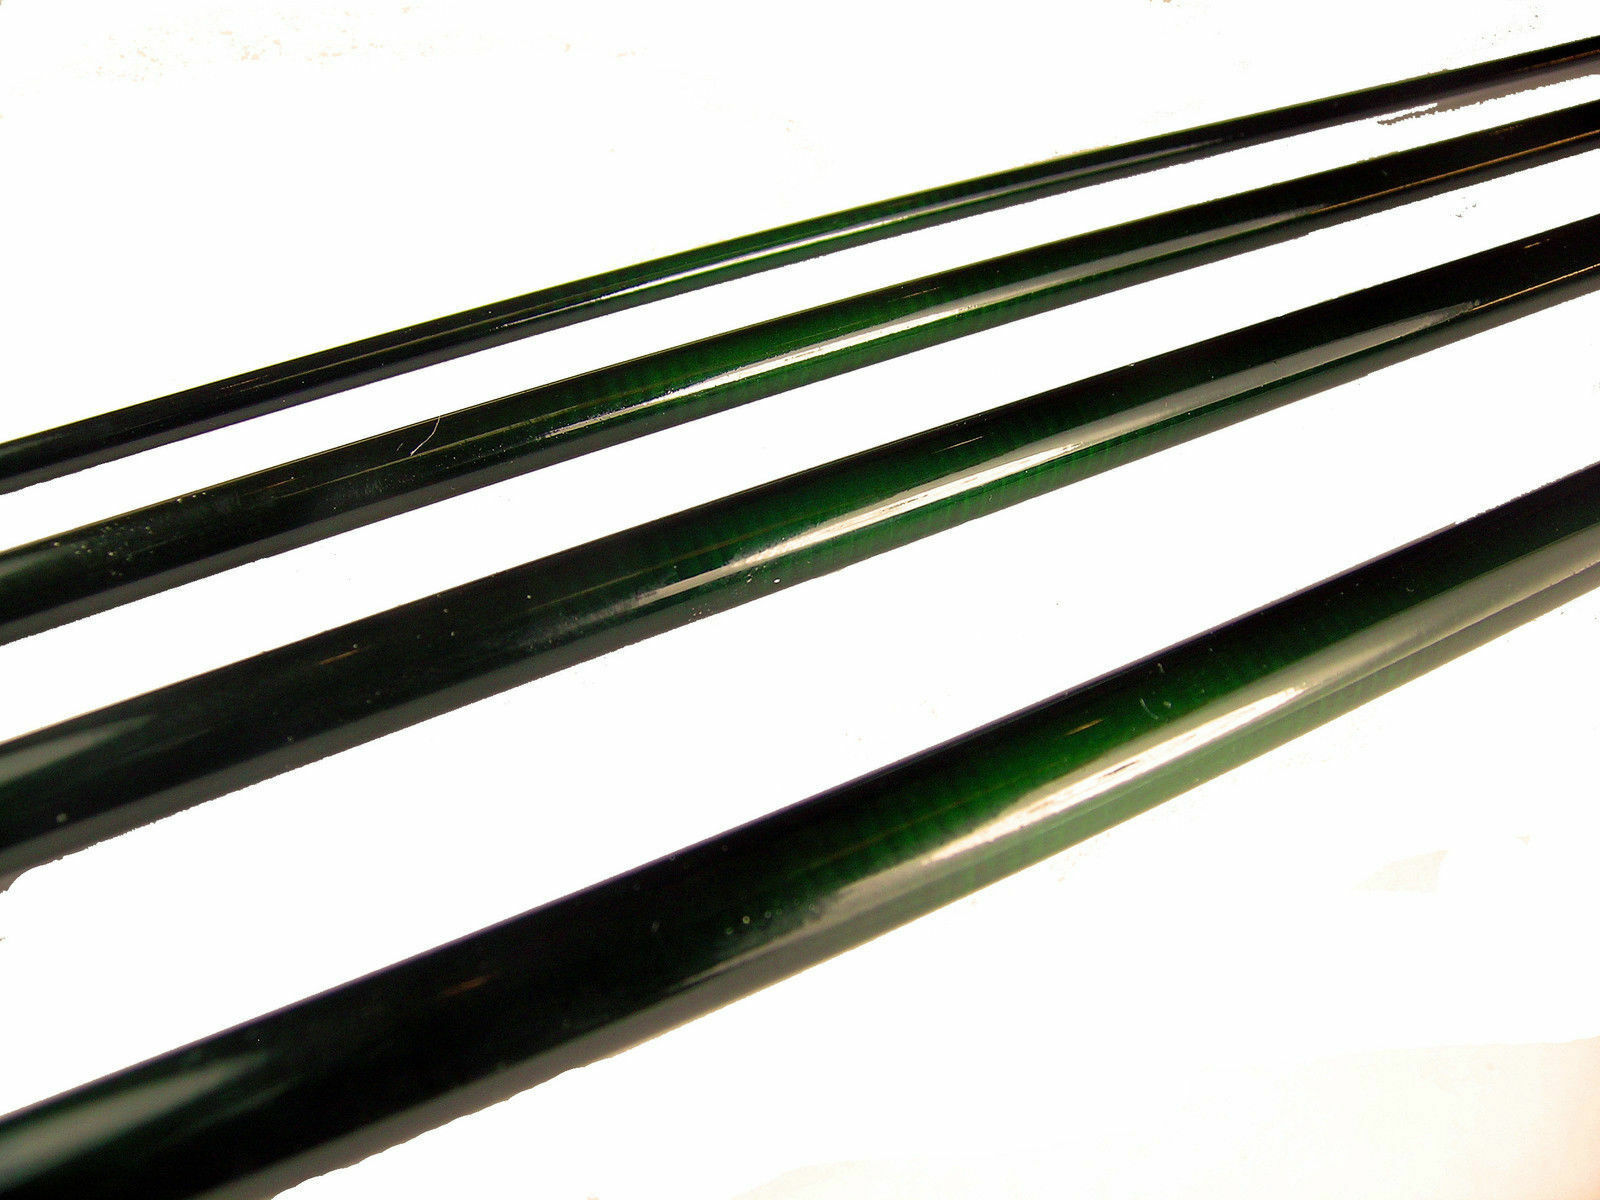 OLDE FLY SHOP SERIES IM-8 GRAPHITE FLY ROD BLANKS 9FT 8WT 4PC GLOSS GREEN